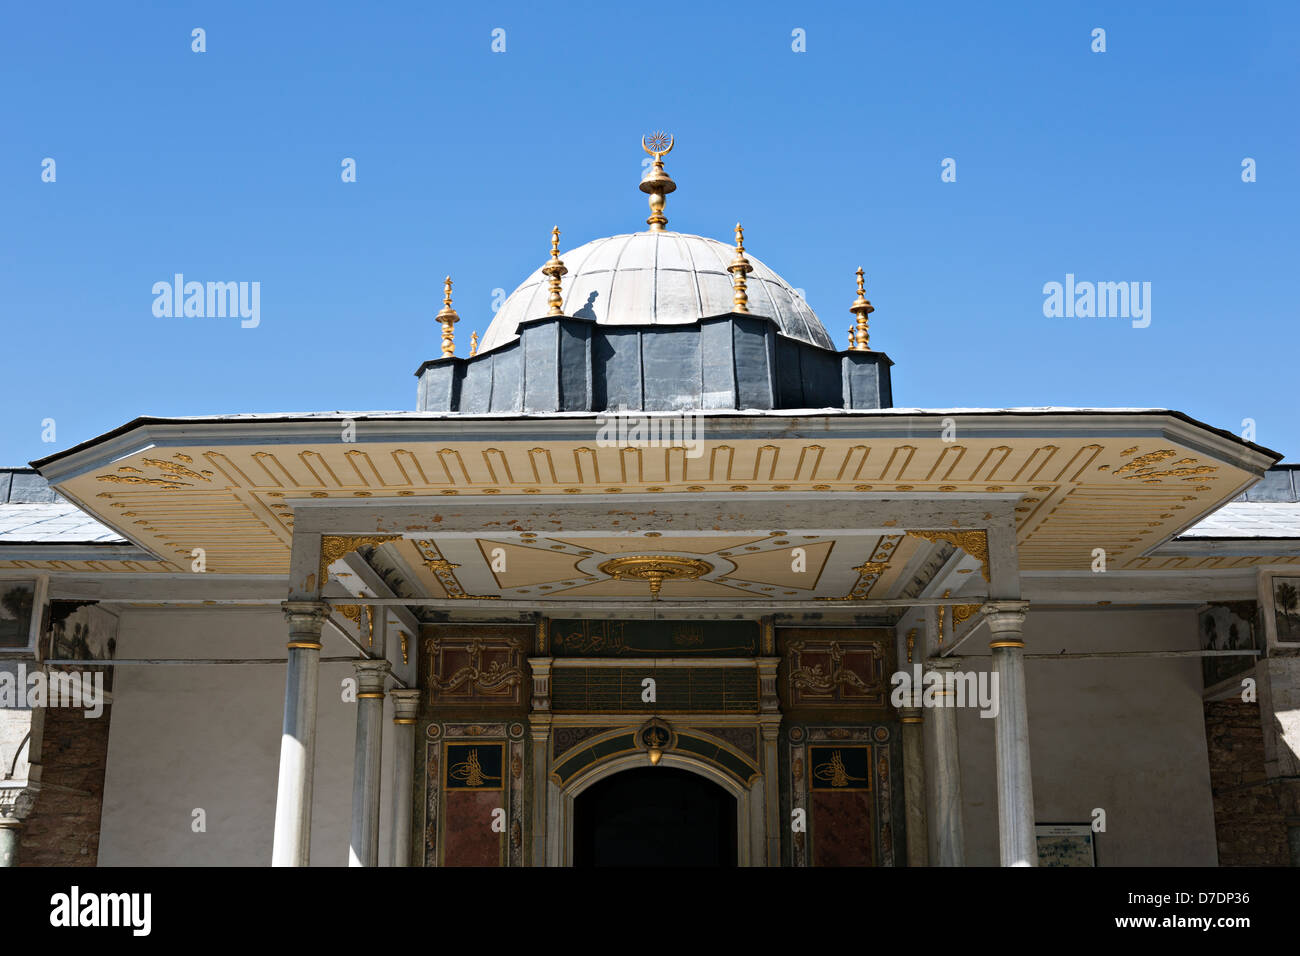 Babüssaade is 3th gate of Topkapi Palace in Istanbul, Turkey - Stock Image